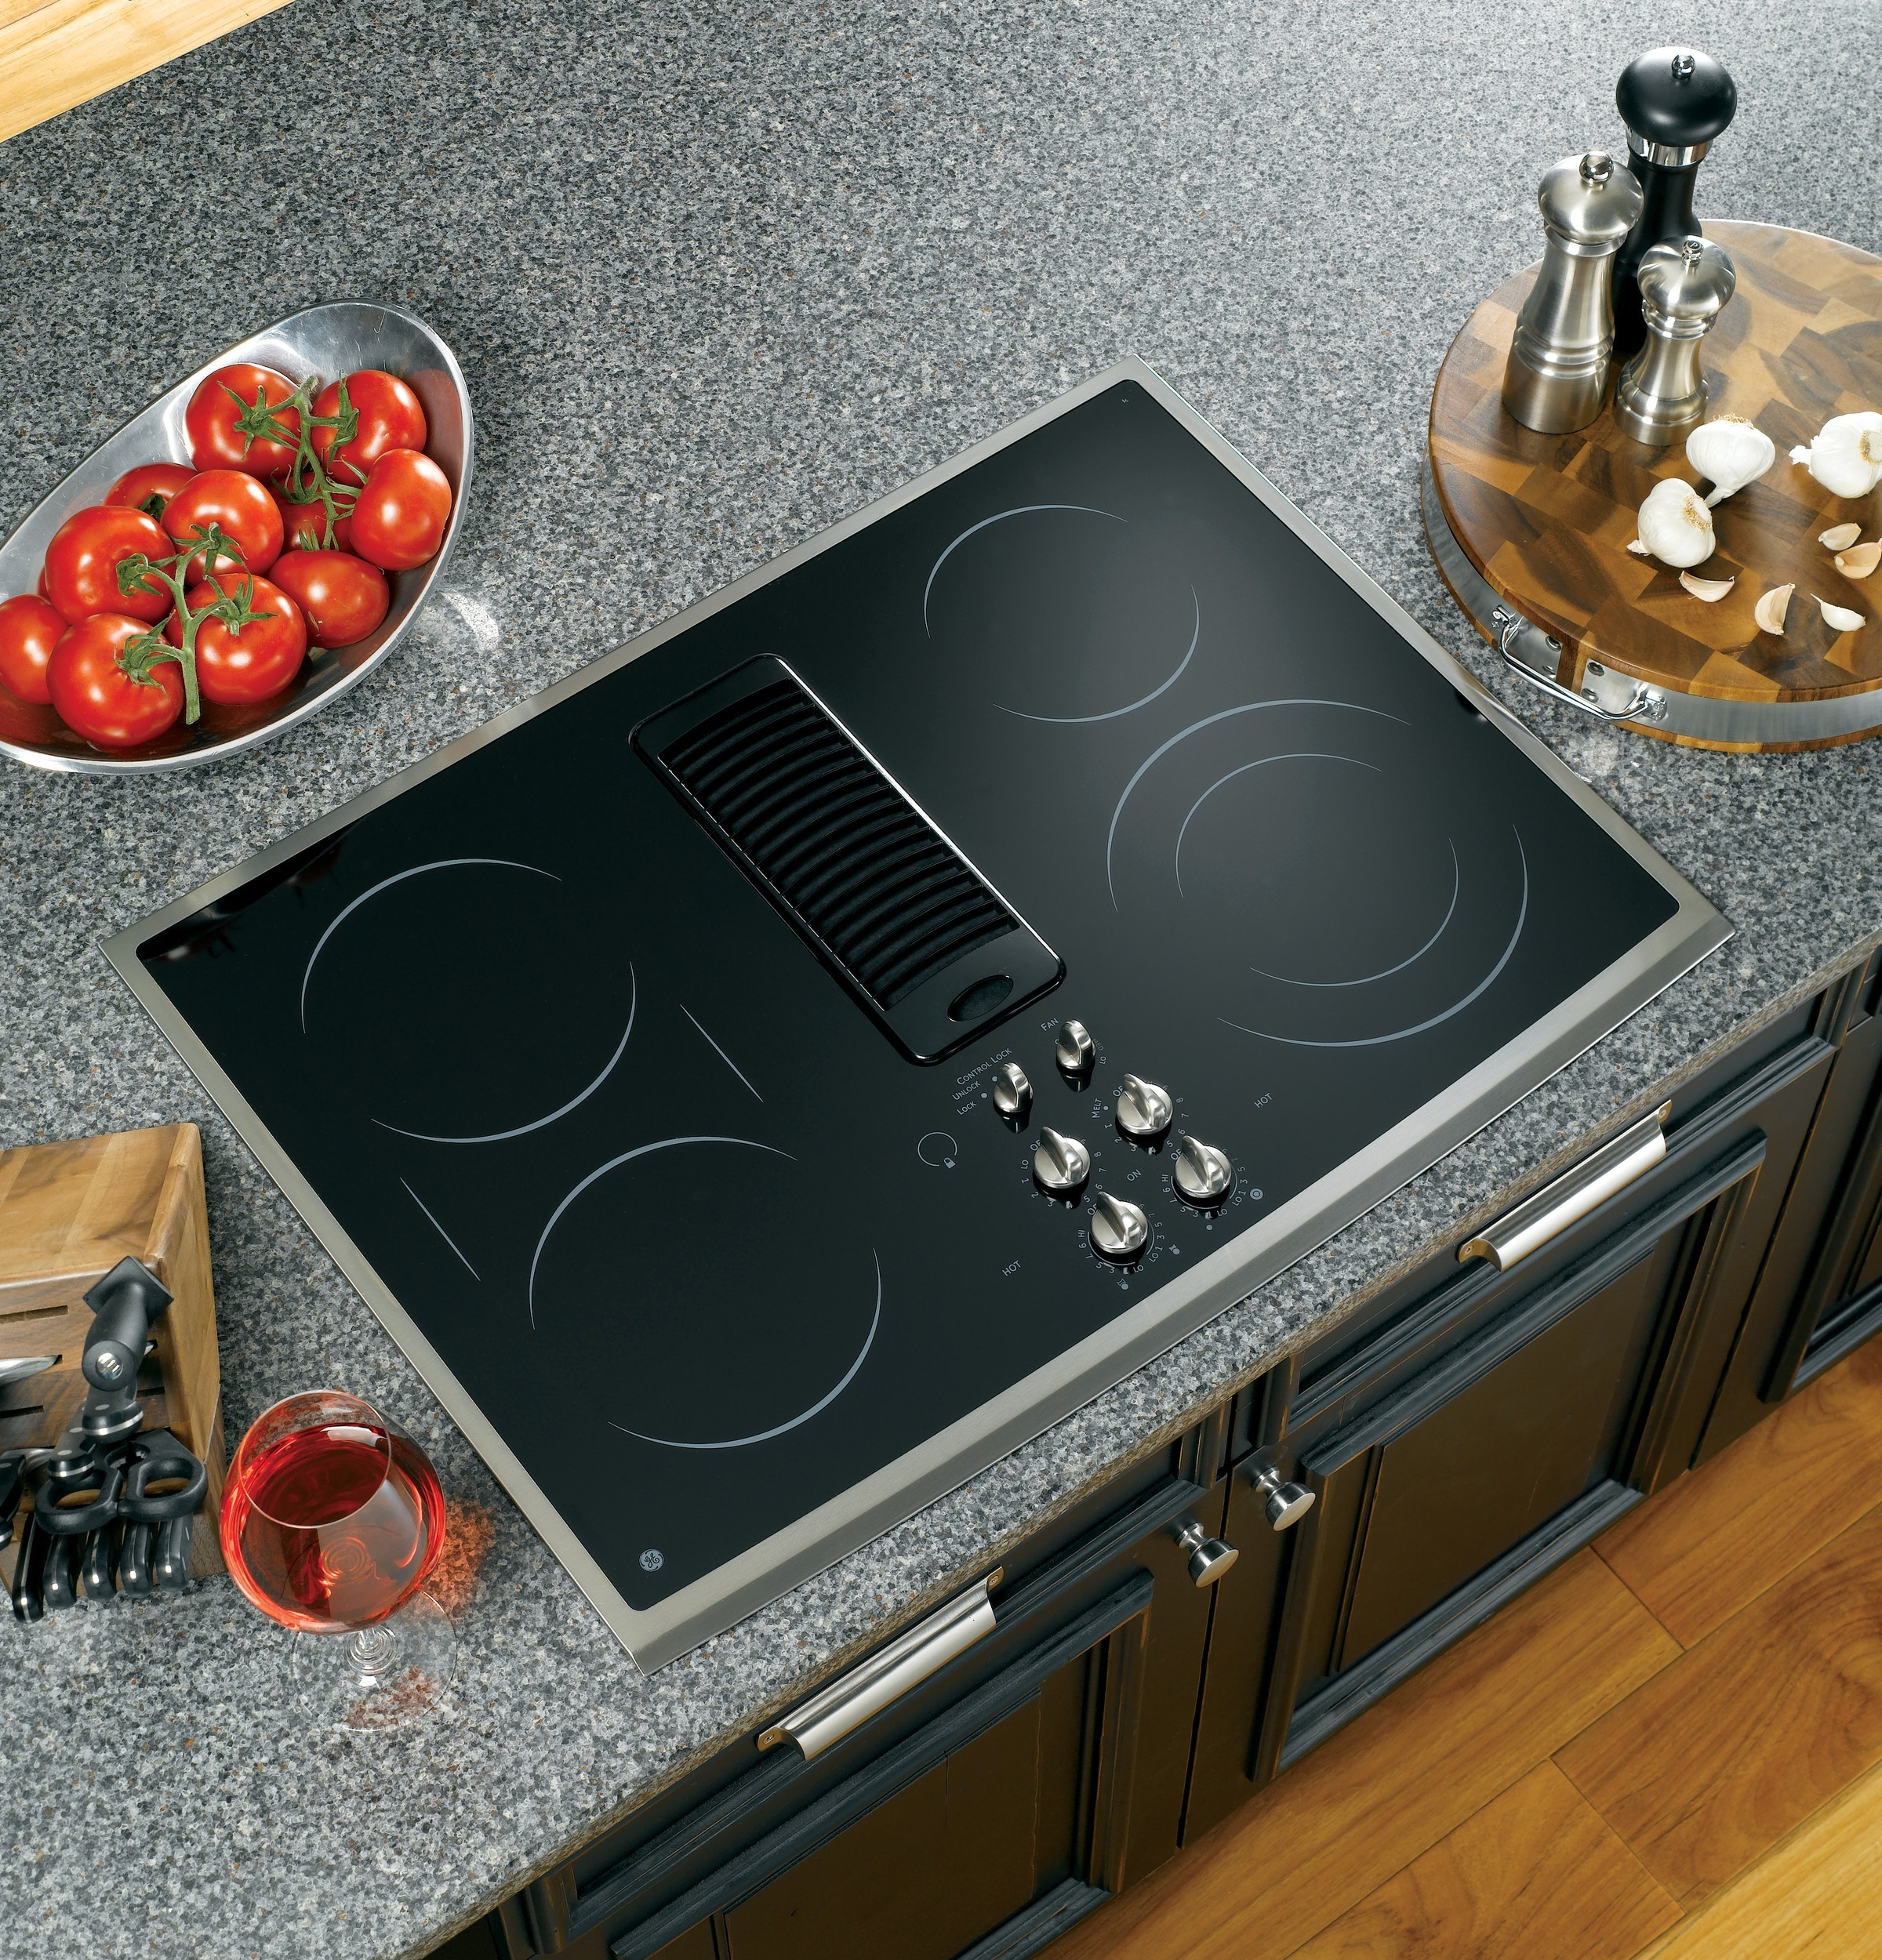 Top 10 must have kitchen appliances electric cooktop